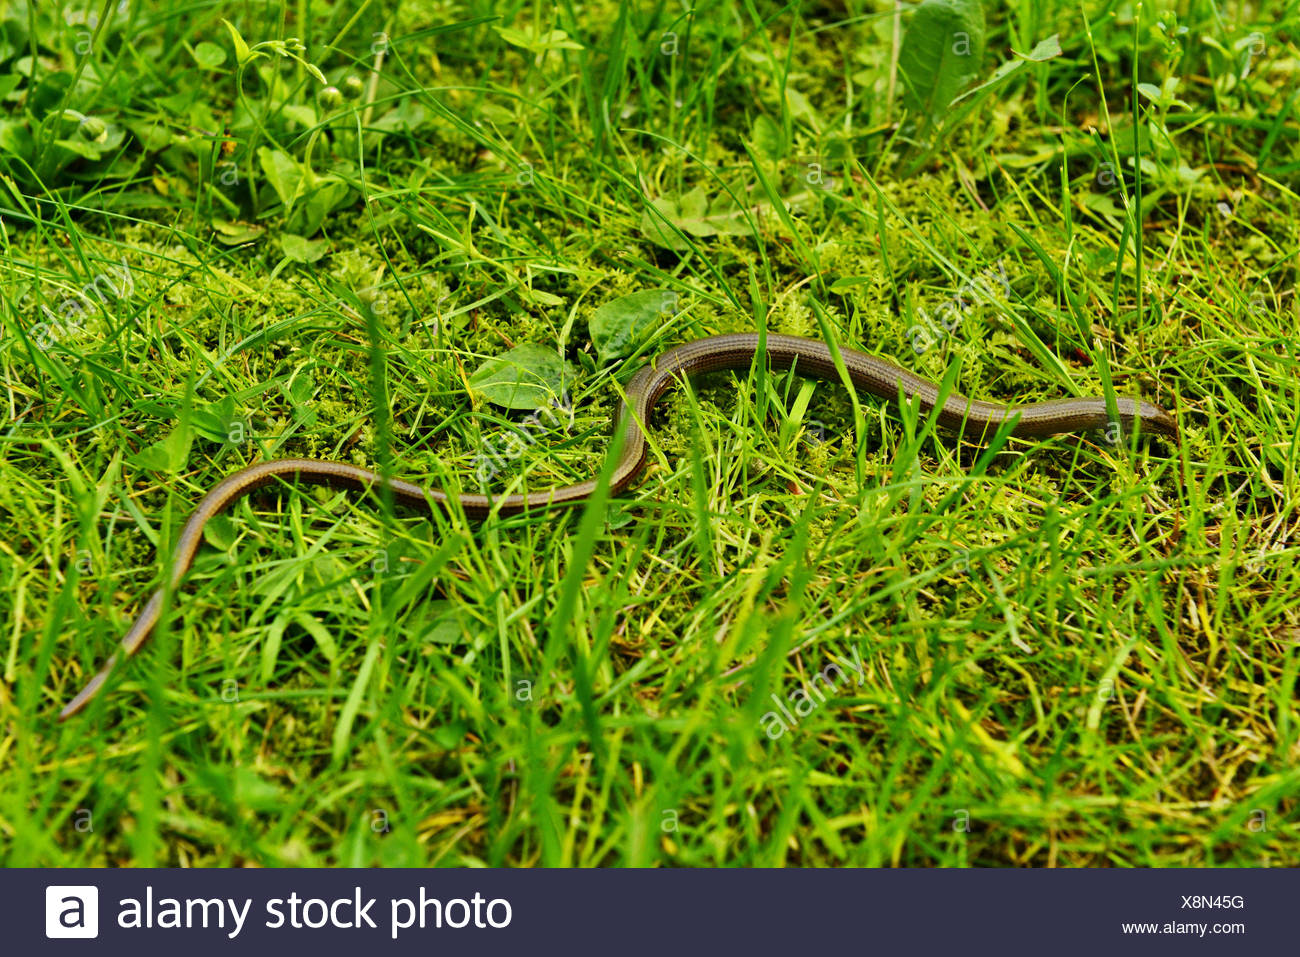 Blindworm in the grass Stock Photo